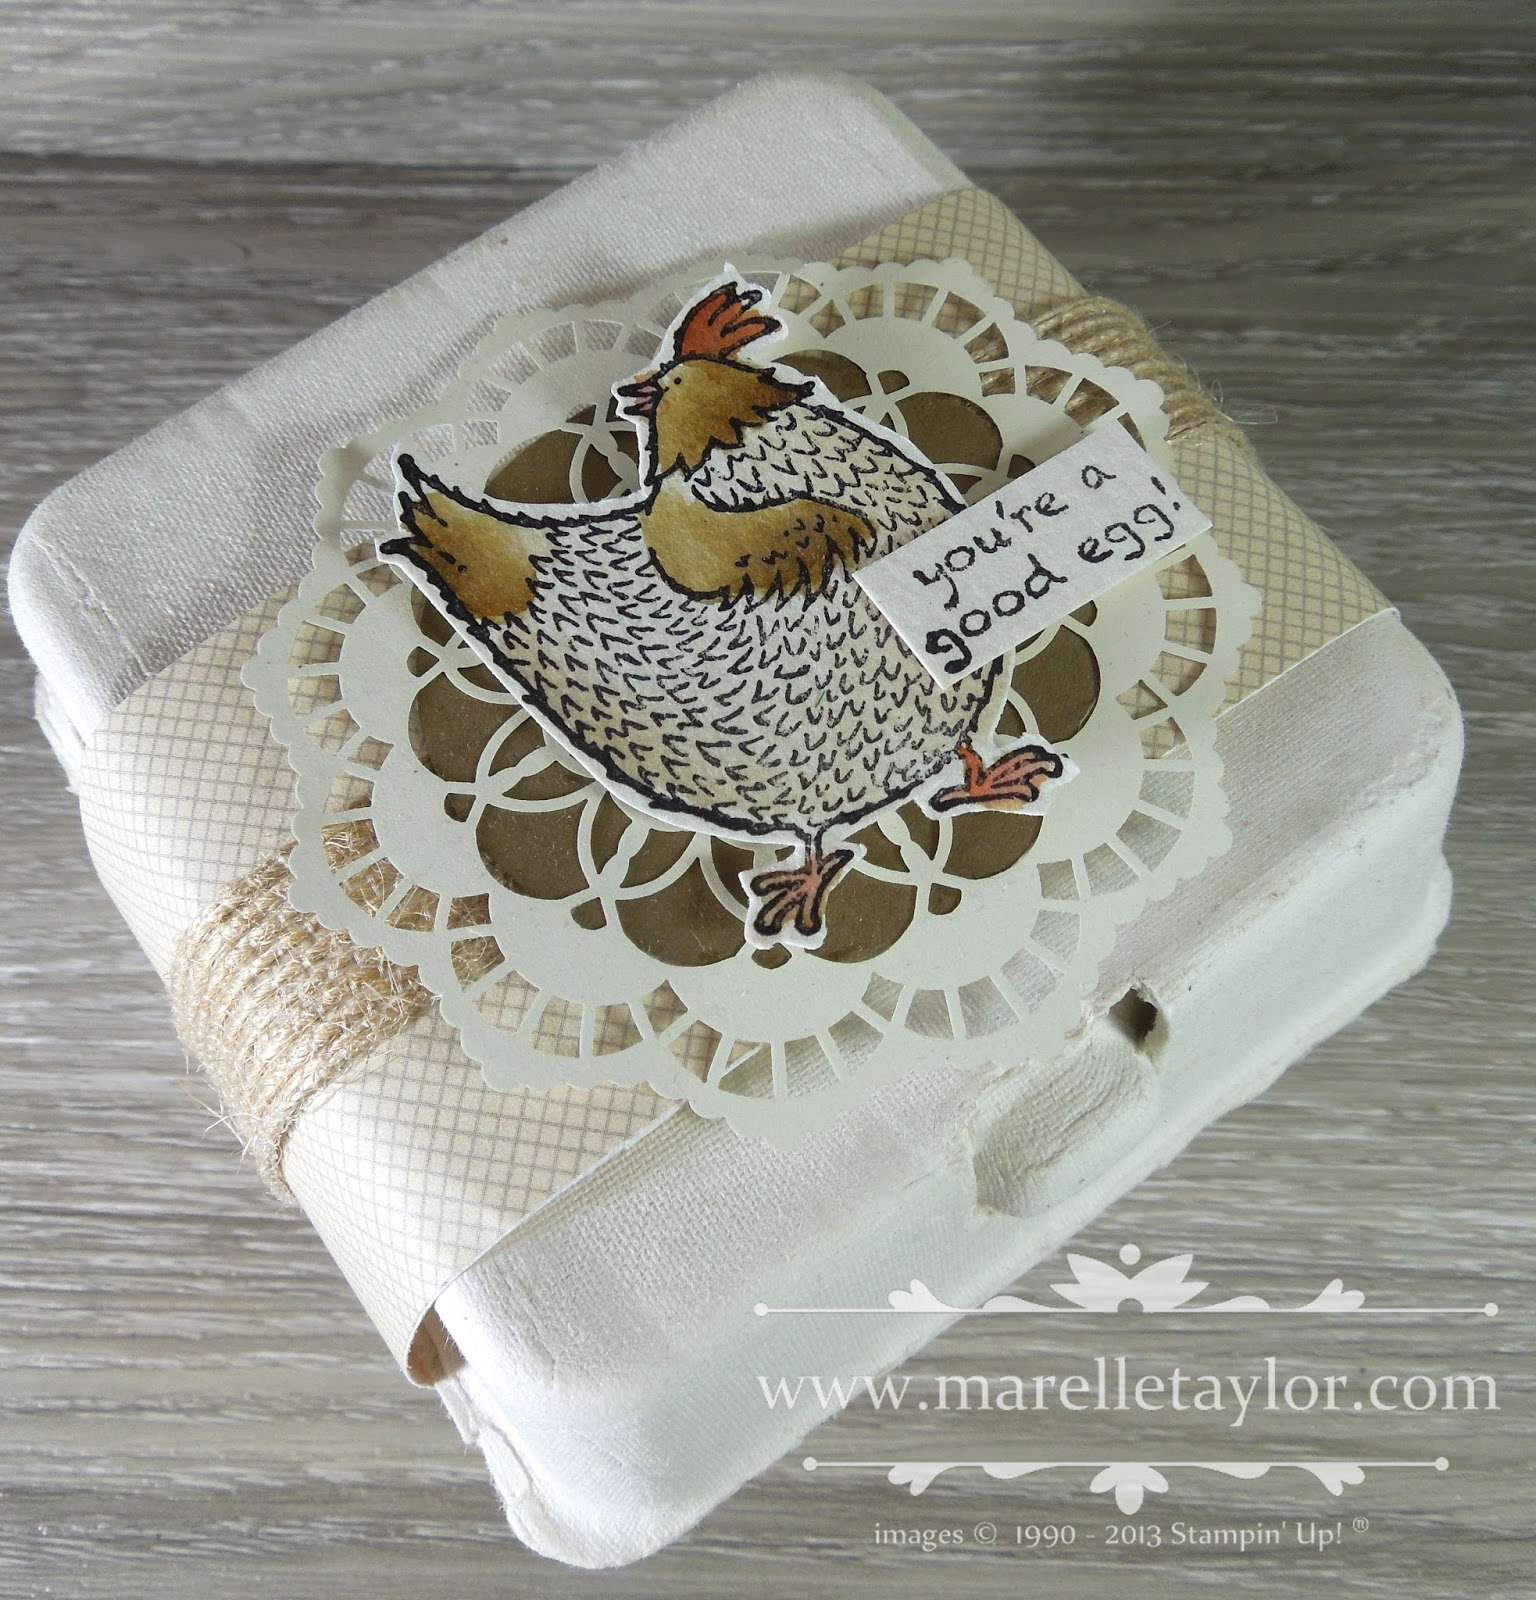 Marelle taylor stampin up demonstrator sydney australia hey as you can probably tell by the chocolate eggs in the shops easter is just around the corner if youre looking for a quick and easy and inexpensive gift negle Images